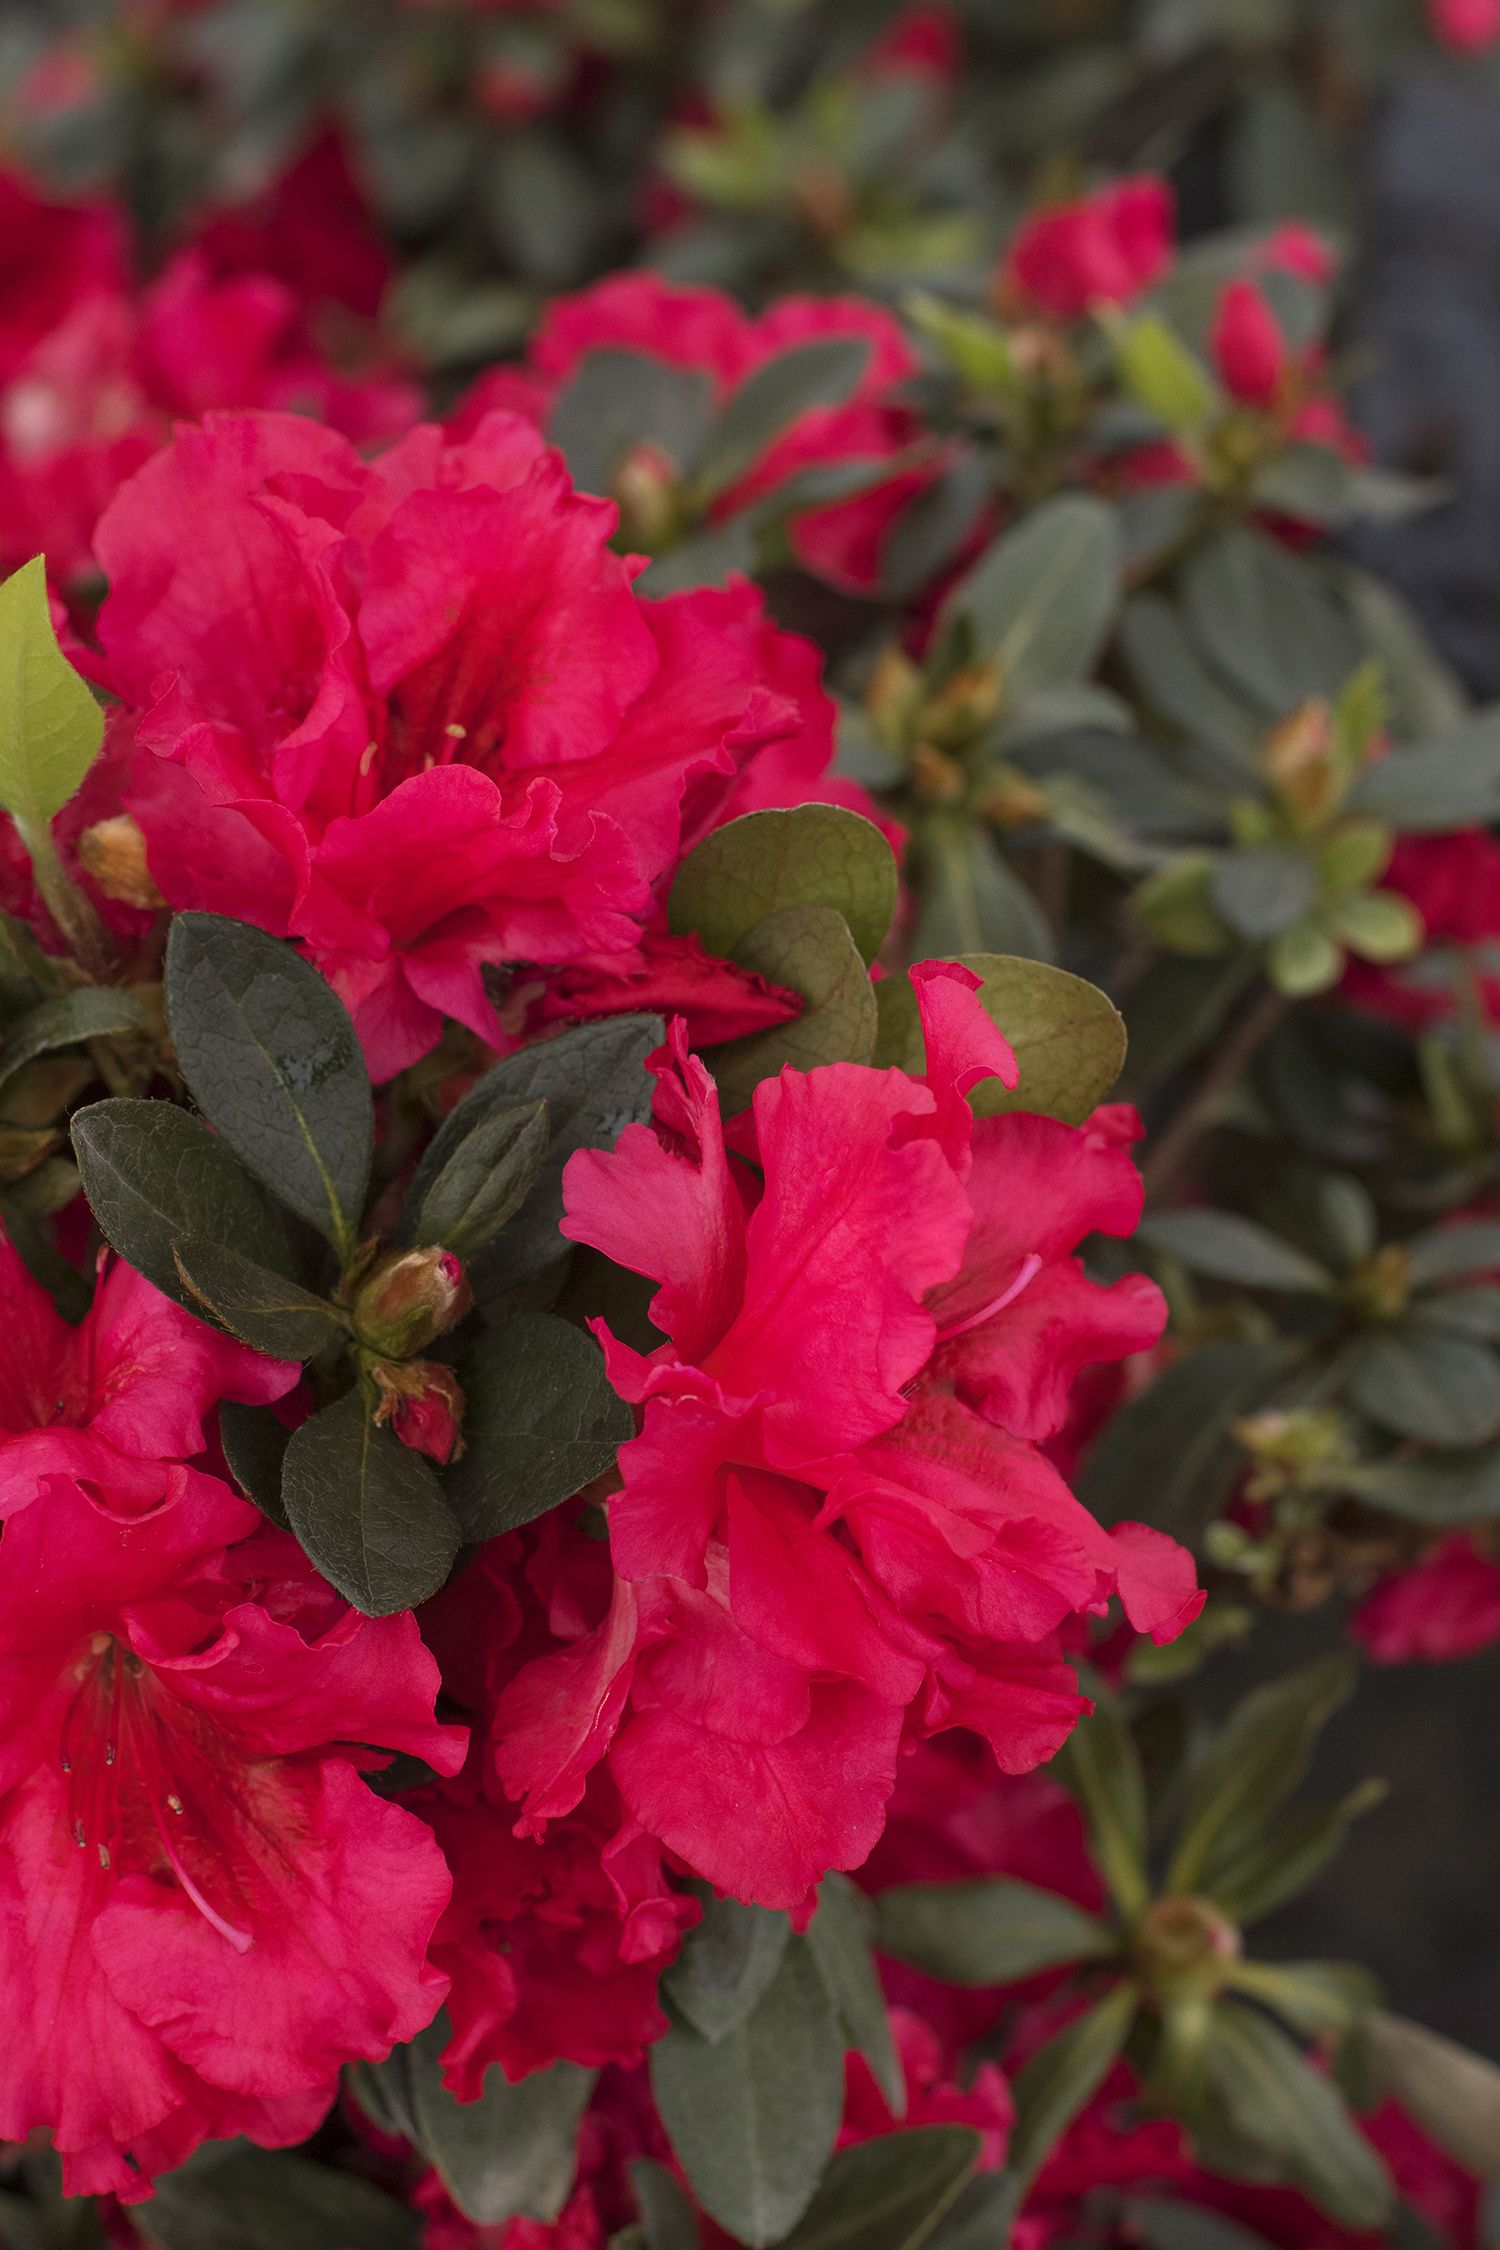 Red Ruffles Azalea Produces Masses Of Showy Deep Cerise Single To Semi Double Blooms With Frilly Petals A Bea Monrovia Plants Azaleas Landscaping With Rocks